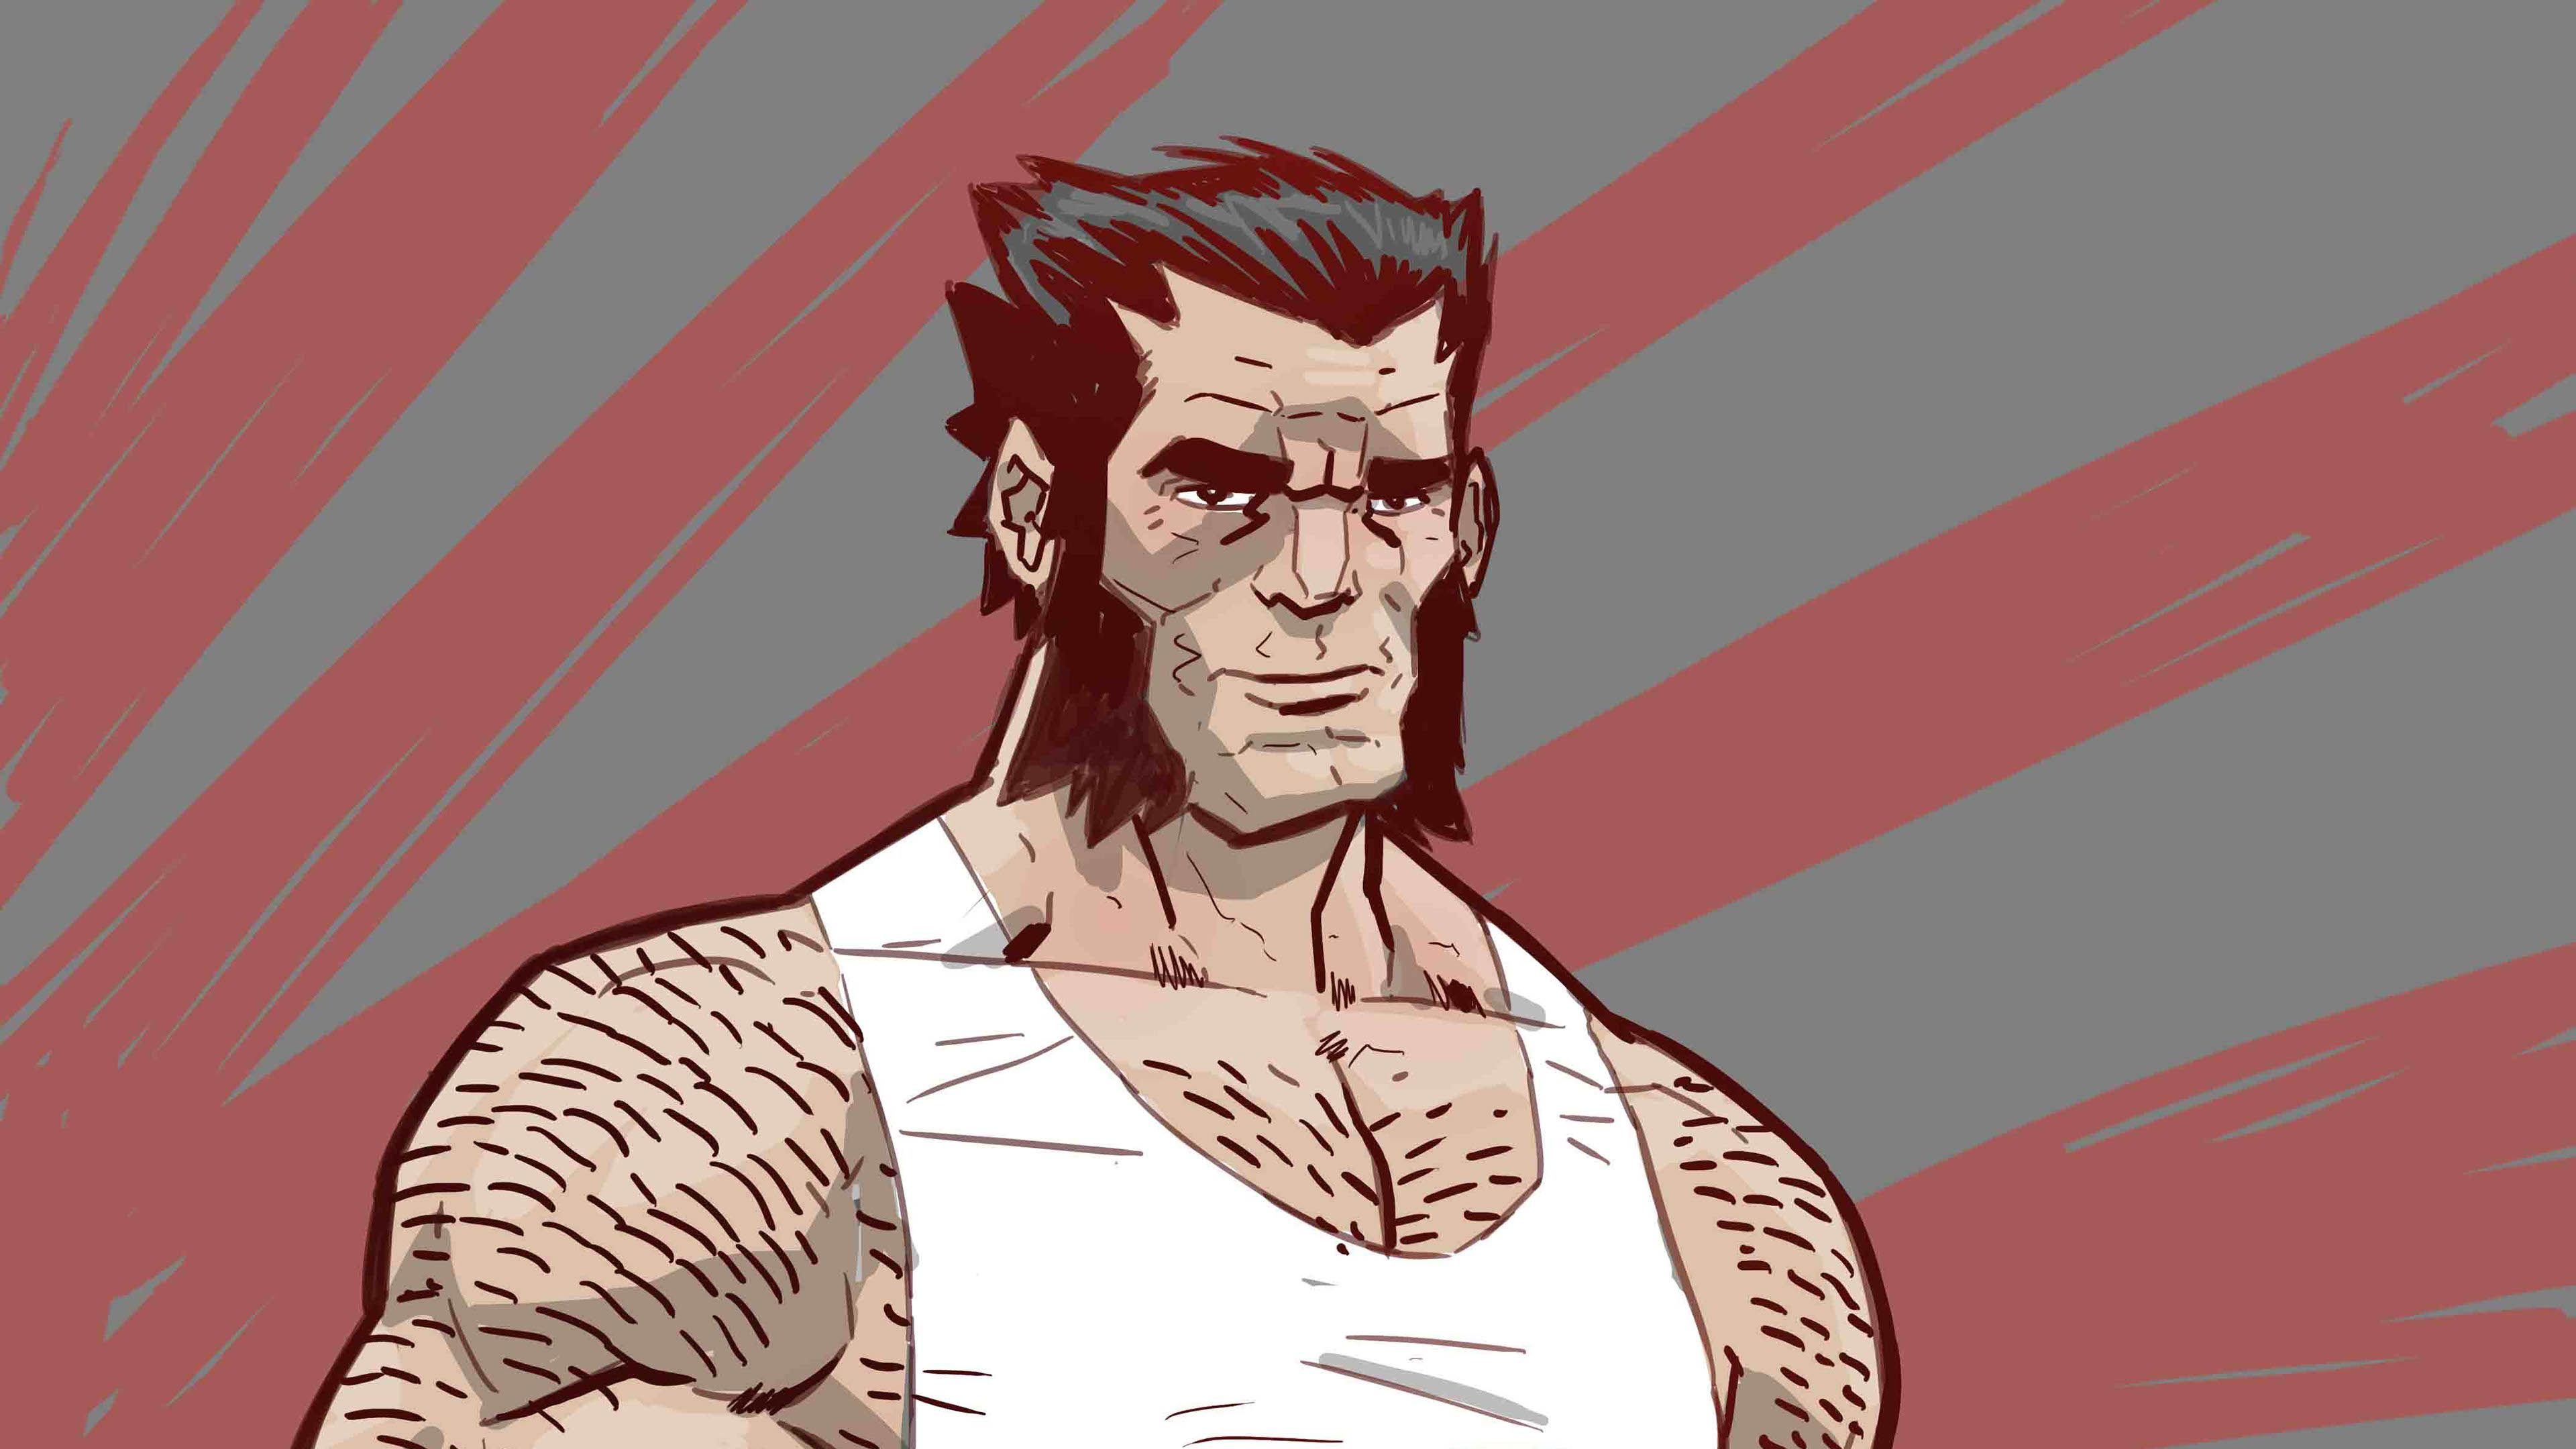 Wolverine Illustration Drawing Wolverine Wallpapers Superheroes Wallpapers Hd Wallpapers Behance Wallpapers 4k Wallpap Drawings Illustration Hero Wallpaper